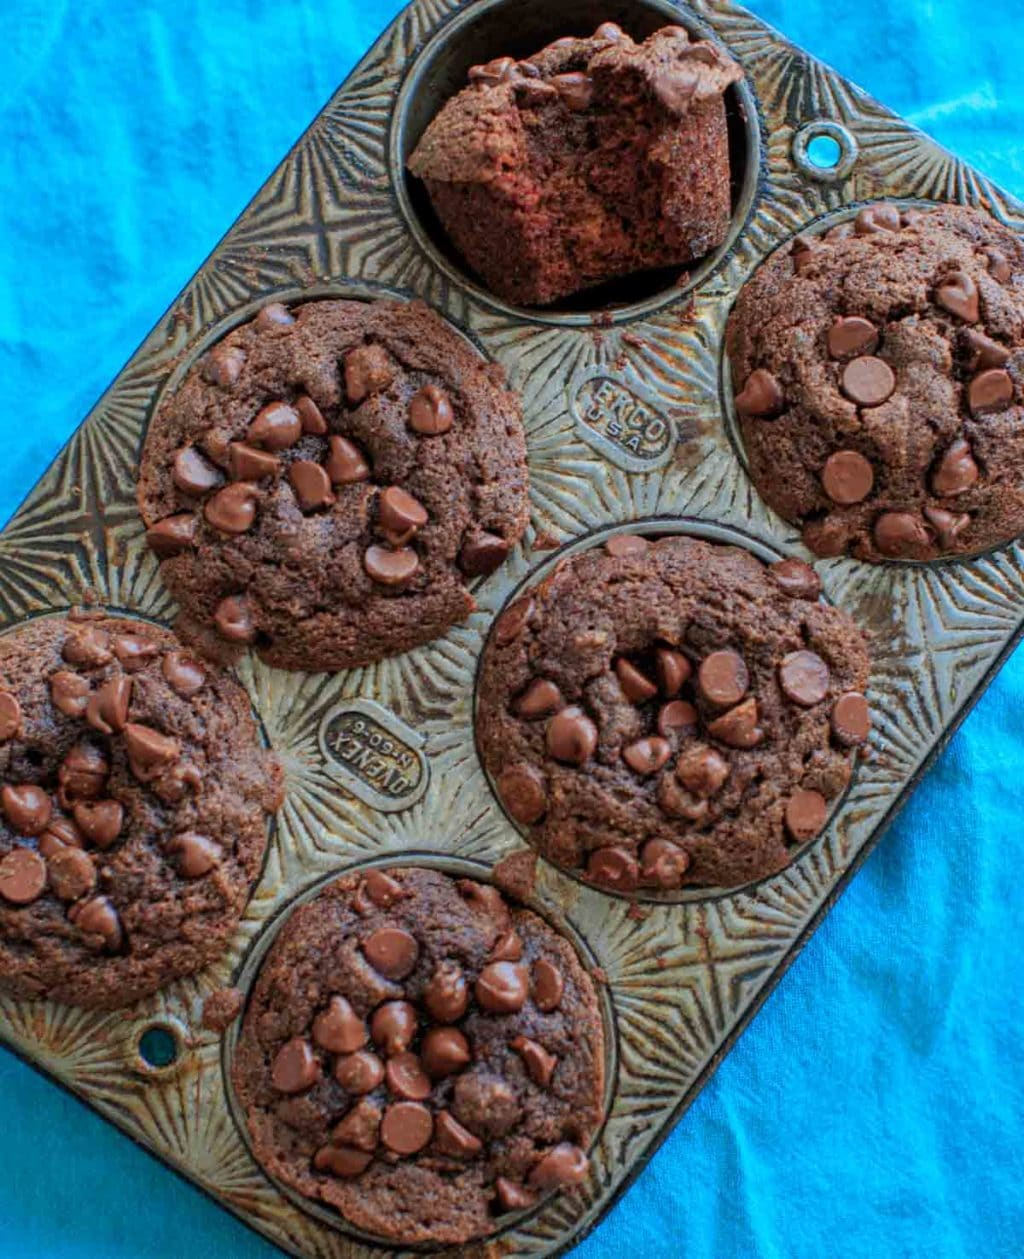 Double Chocolate Coconut Flour Muffins - naturally sweetened with no added sugar, and are a paleo friendly snack.